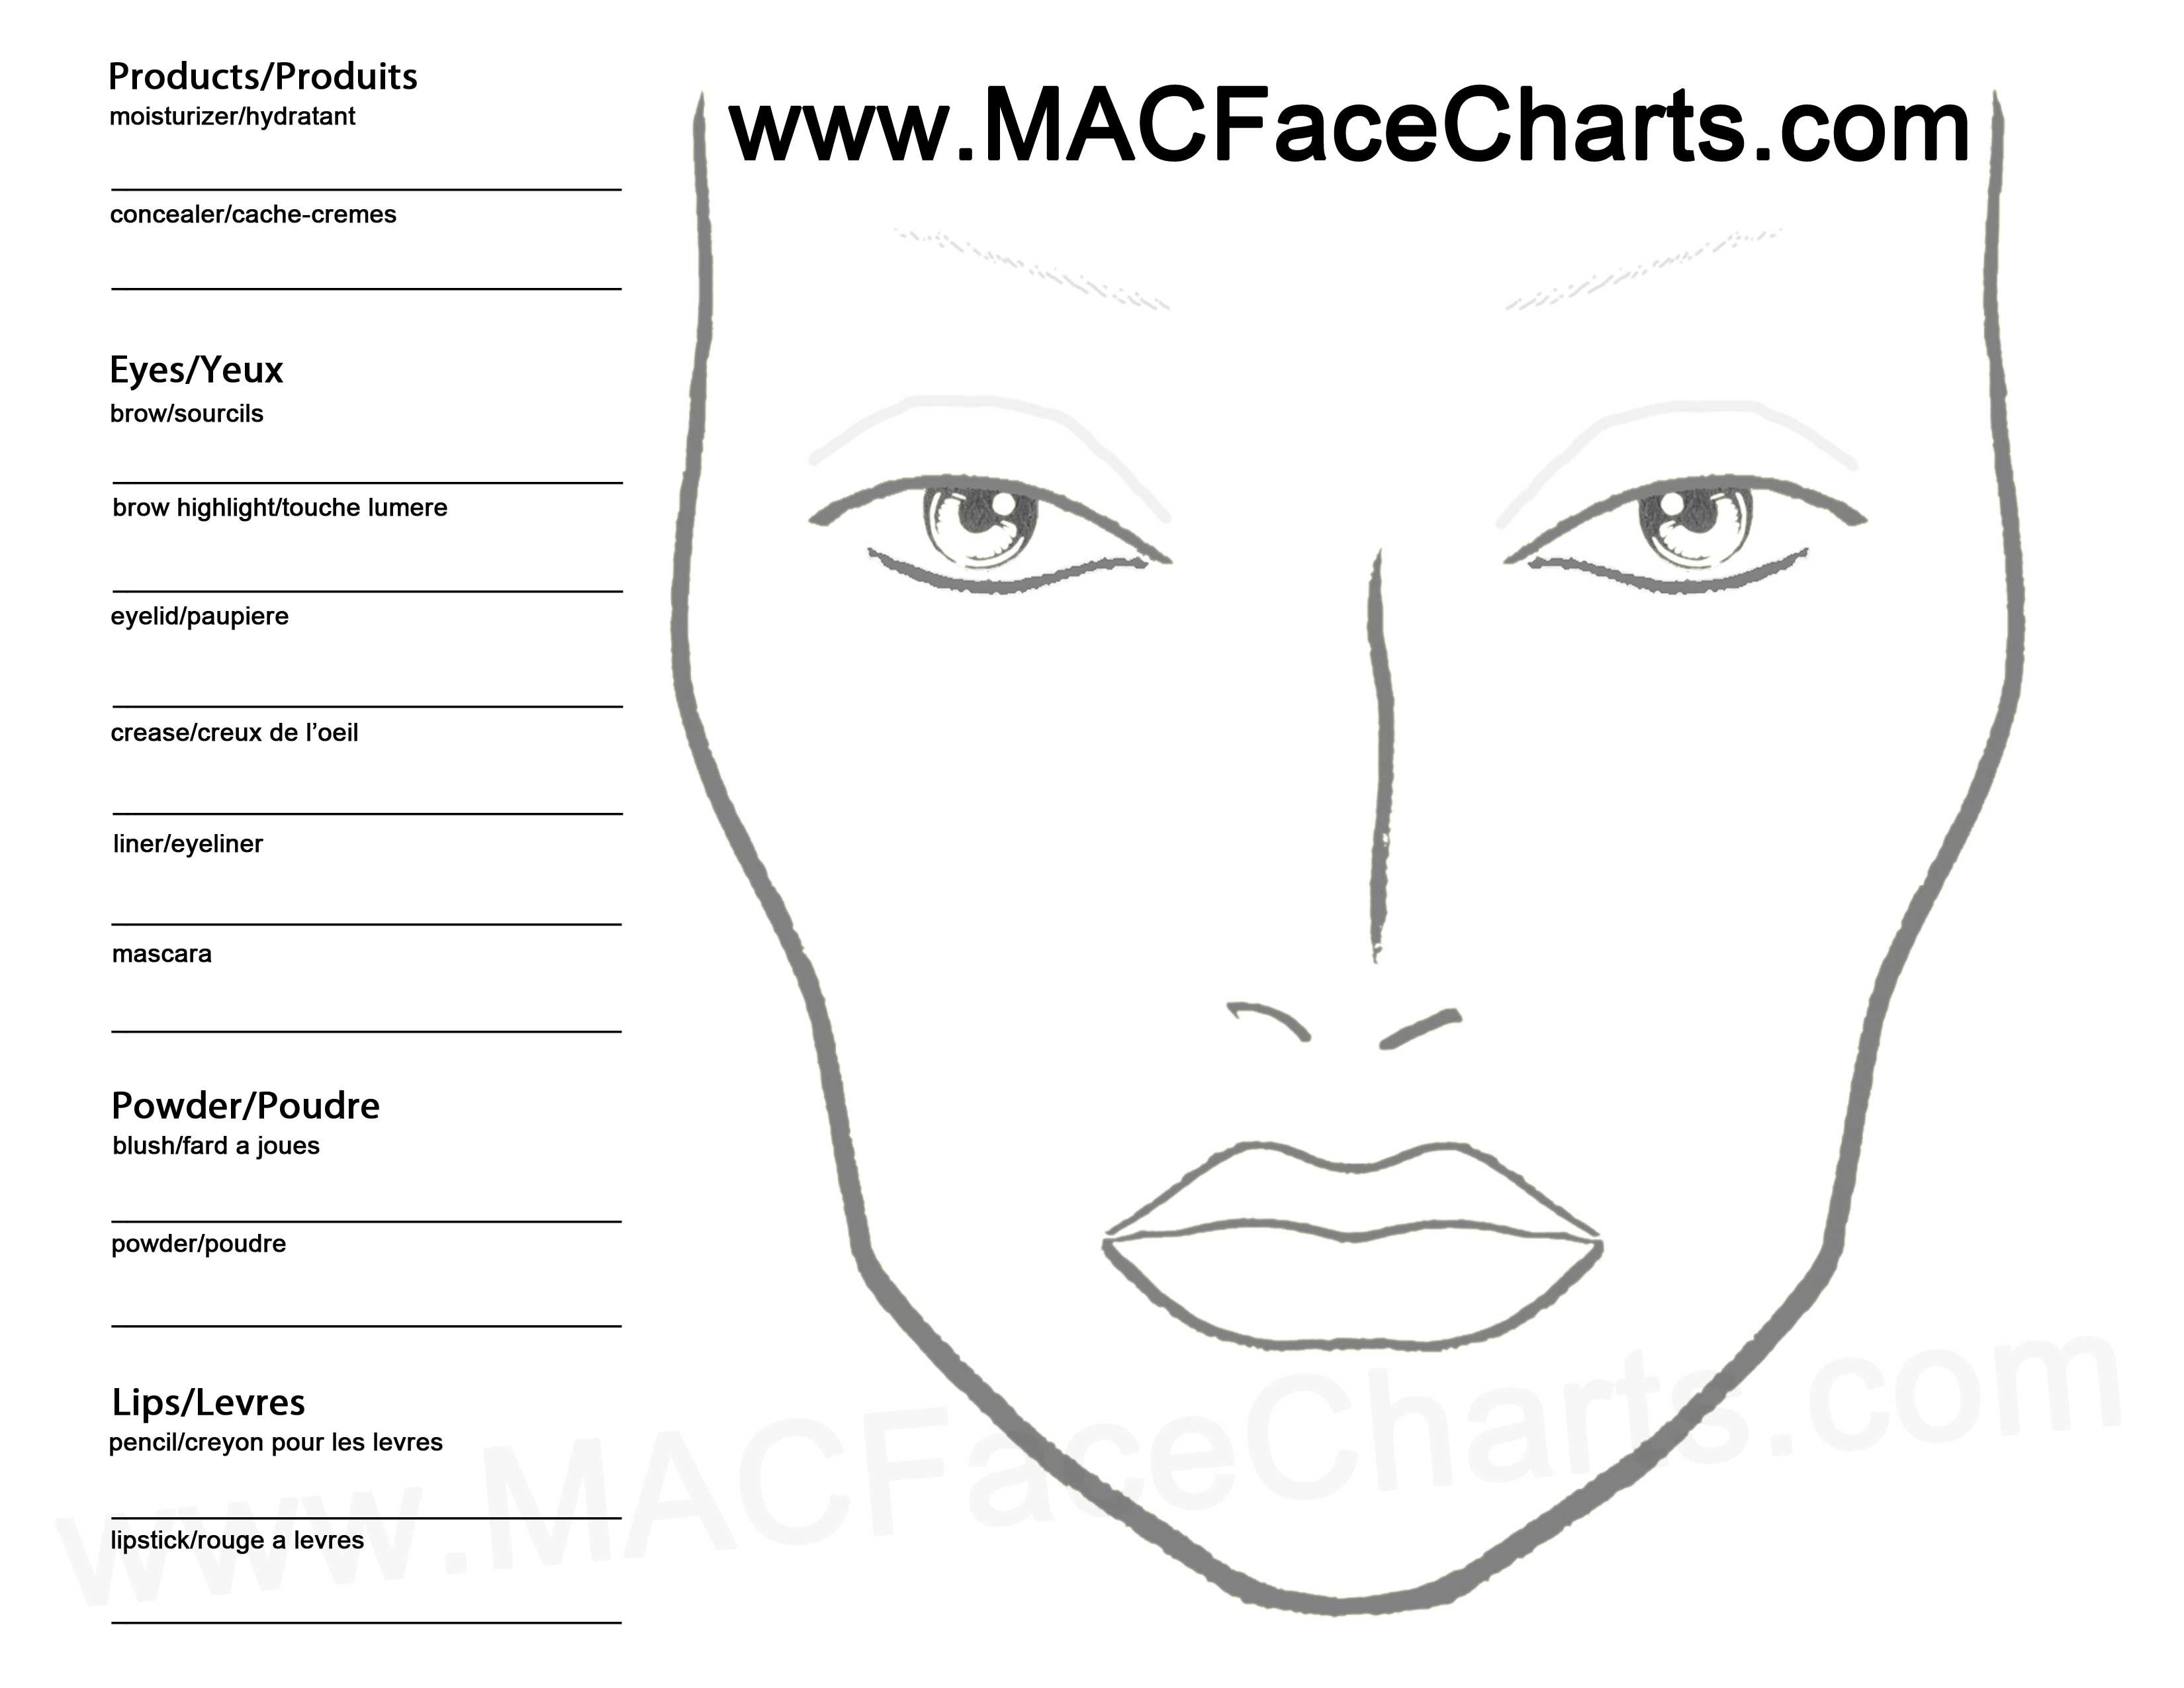 Use this face chart to create your own looks! Don't forget